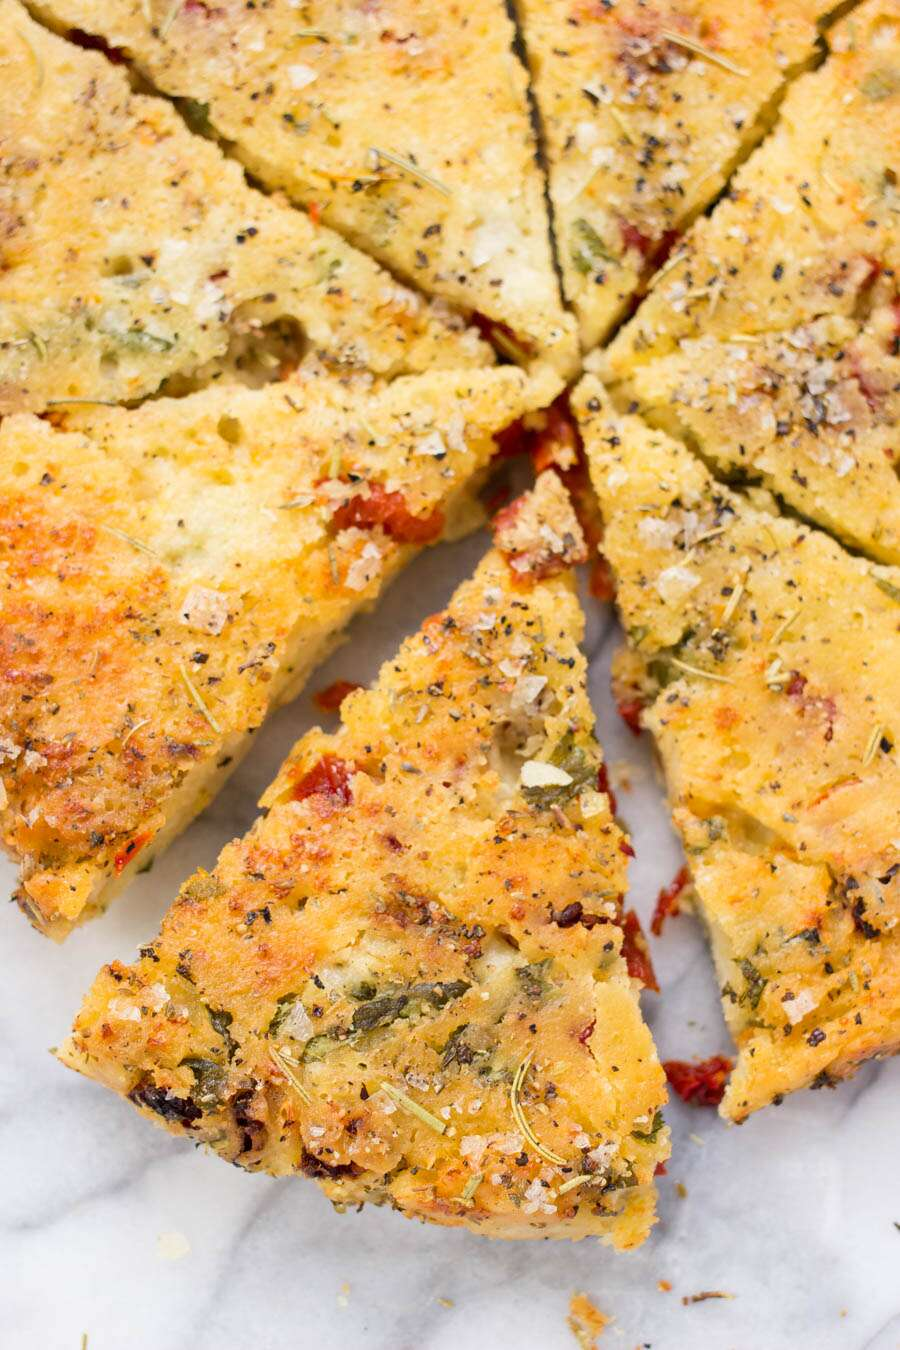 Filled Gluten-Free Focaccia Bread via @kingarthurflour